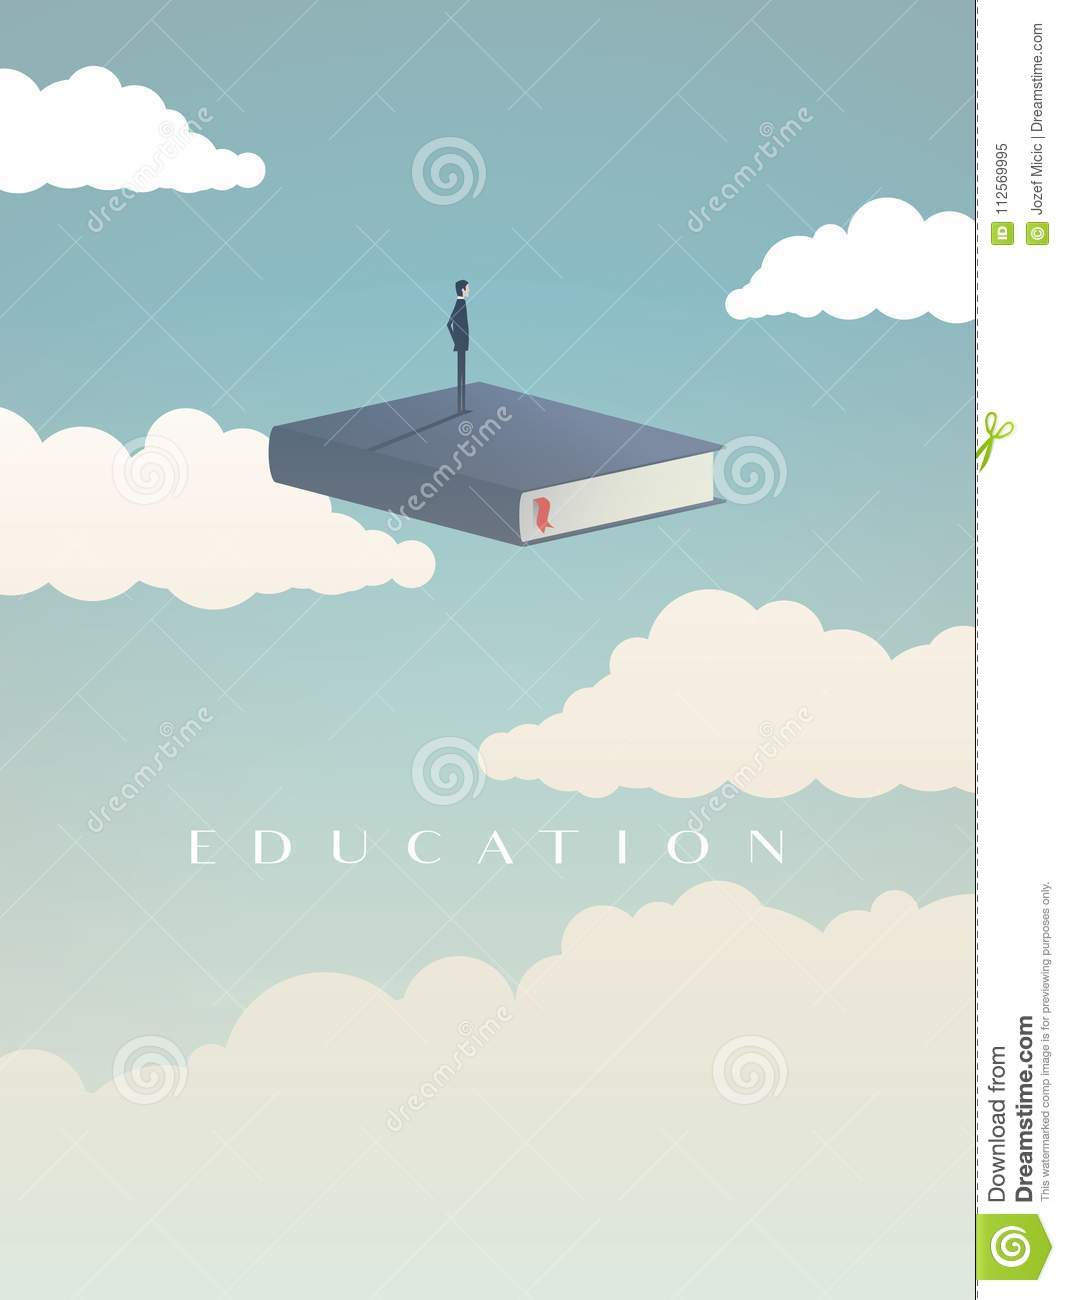 Education Vector Concept  Businessman Or Student Standing On